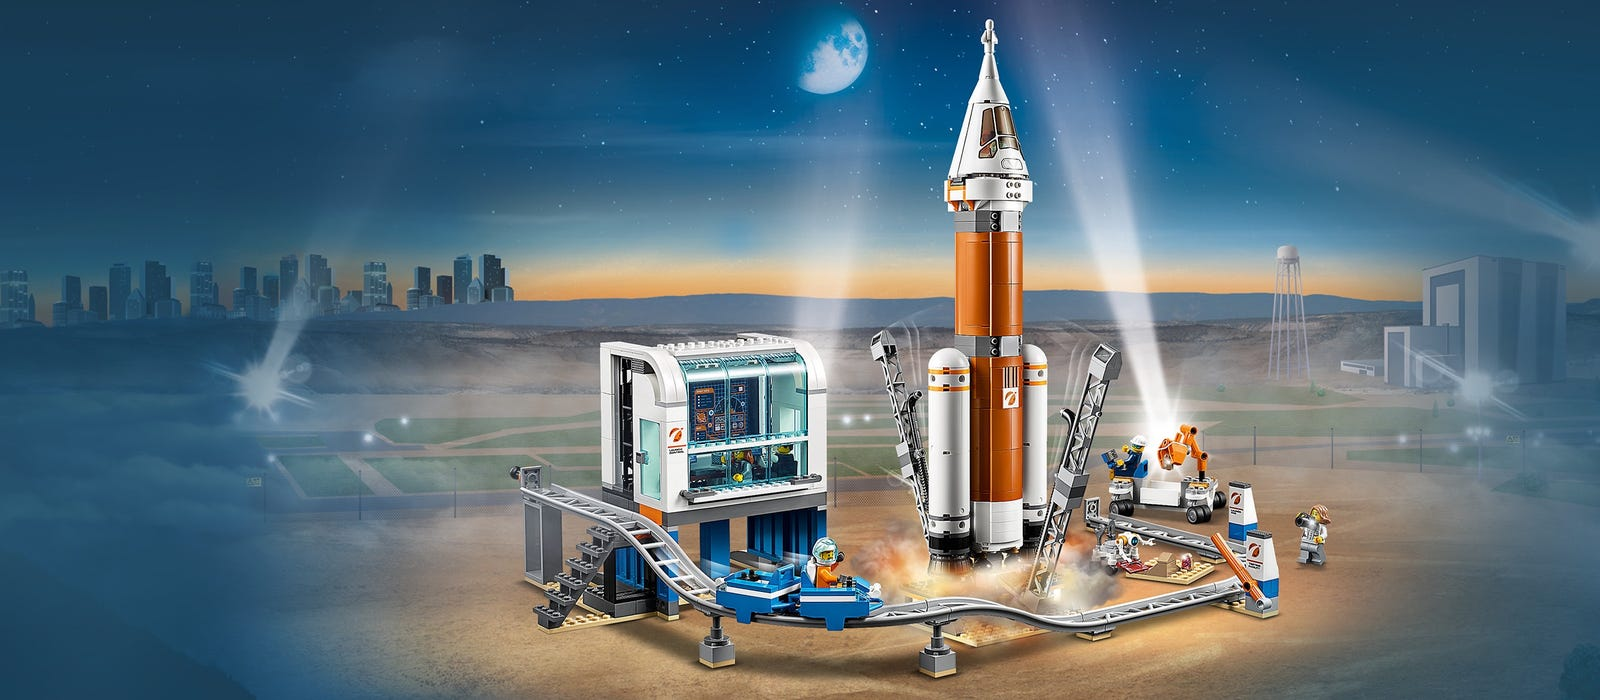 City Product Deep Space Rocket and Launch Control 60228